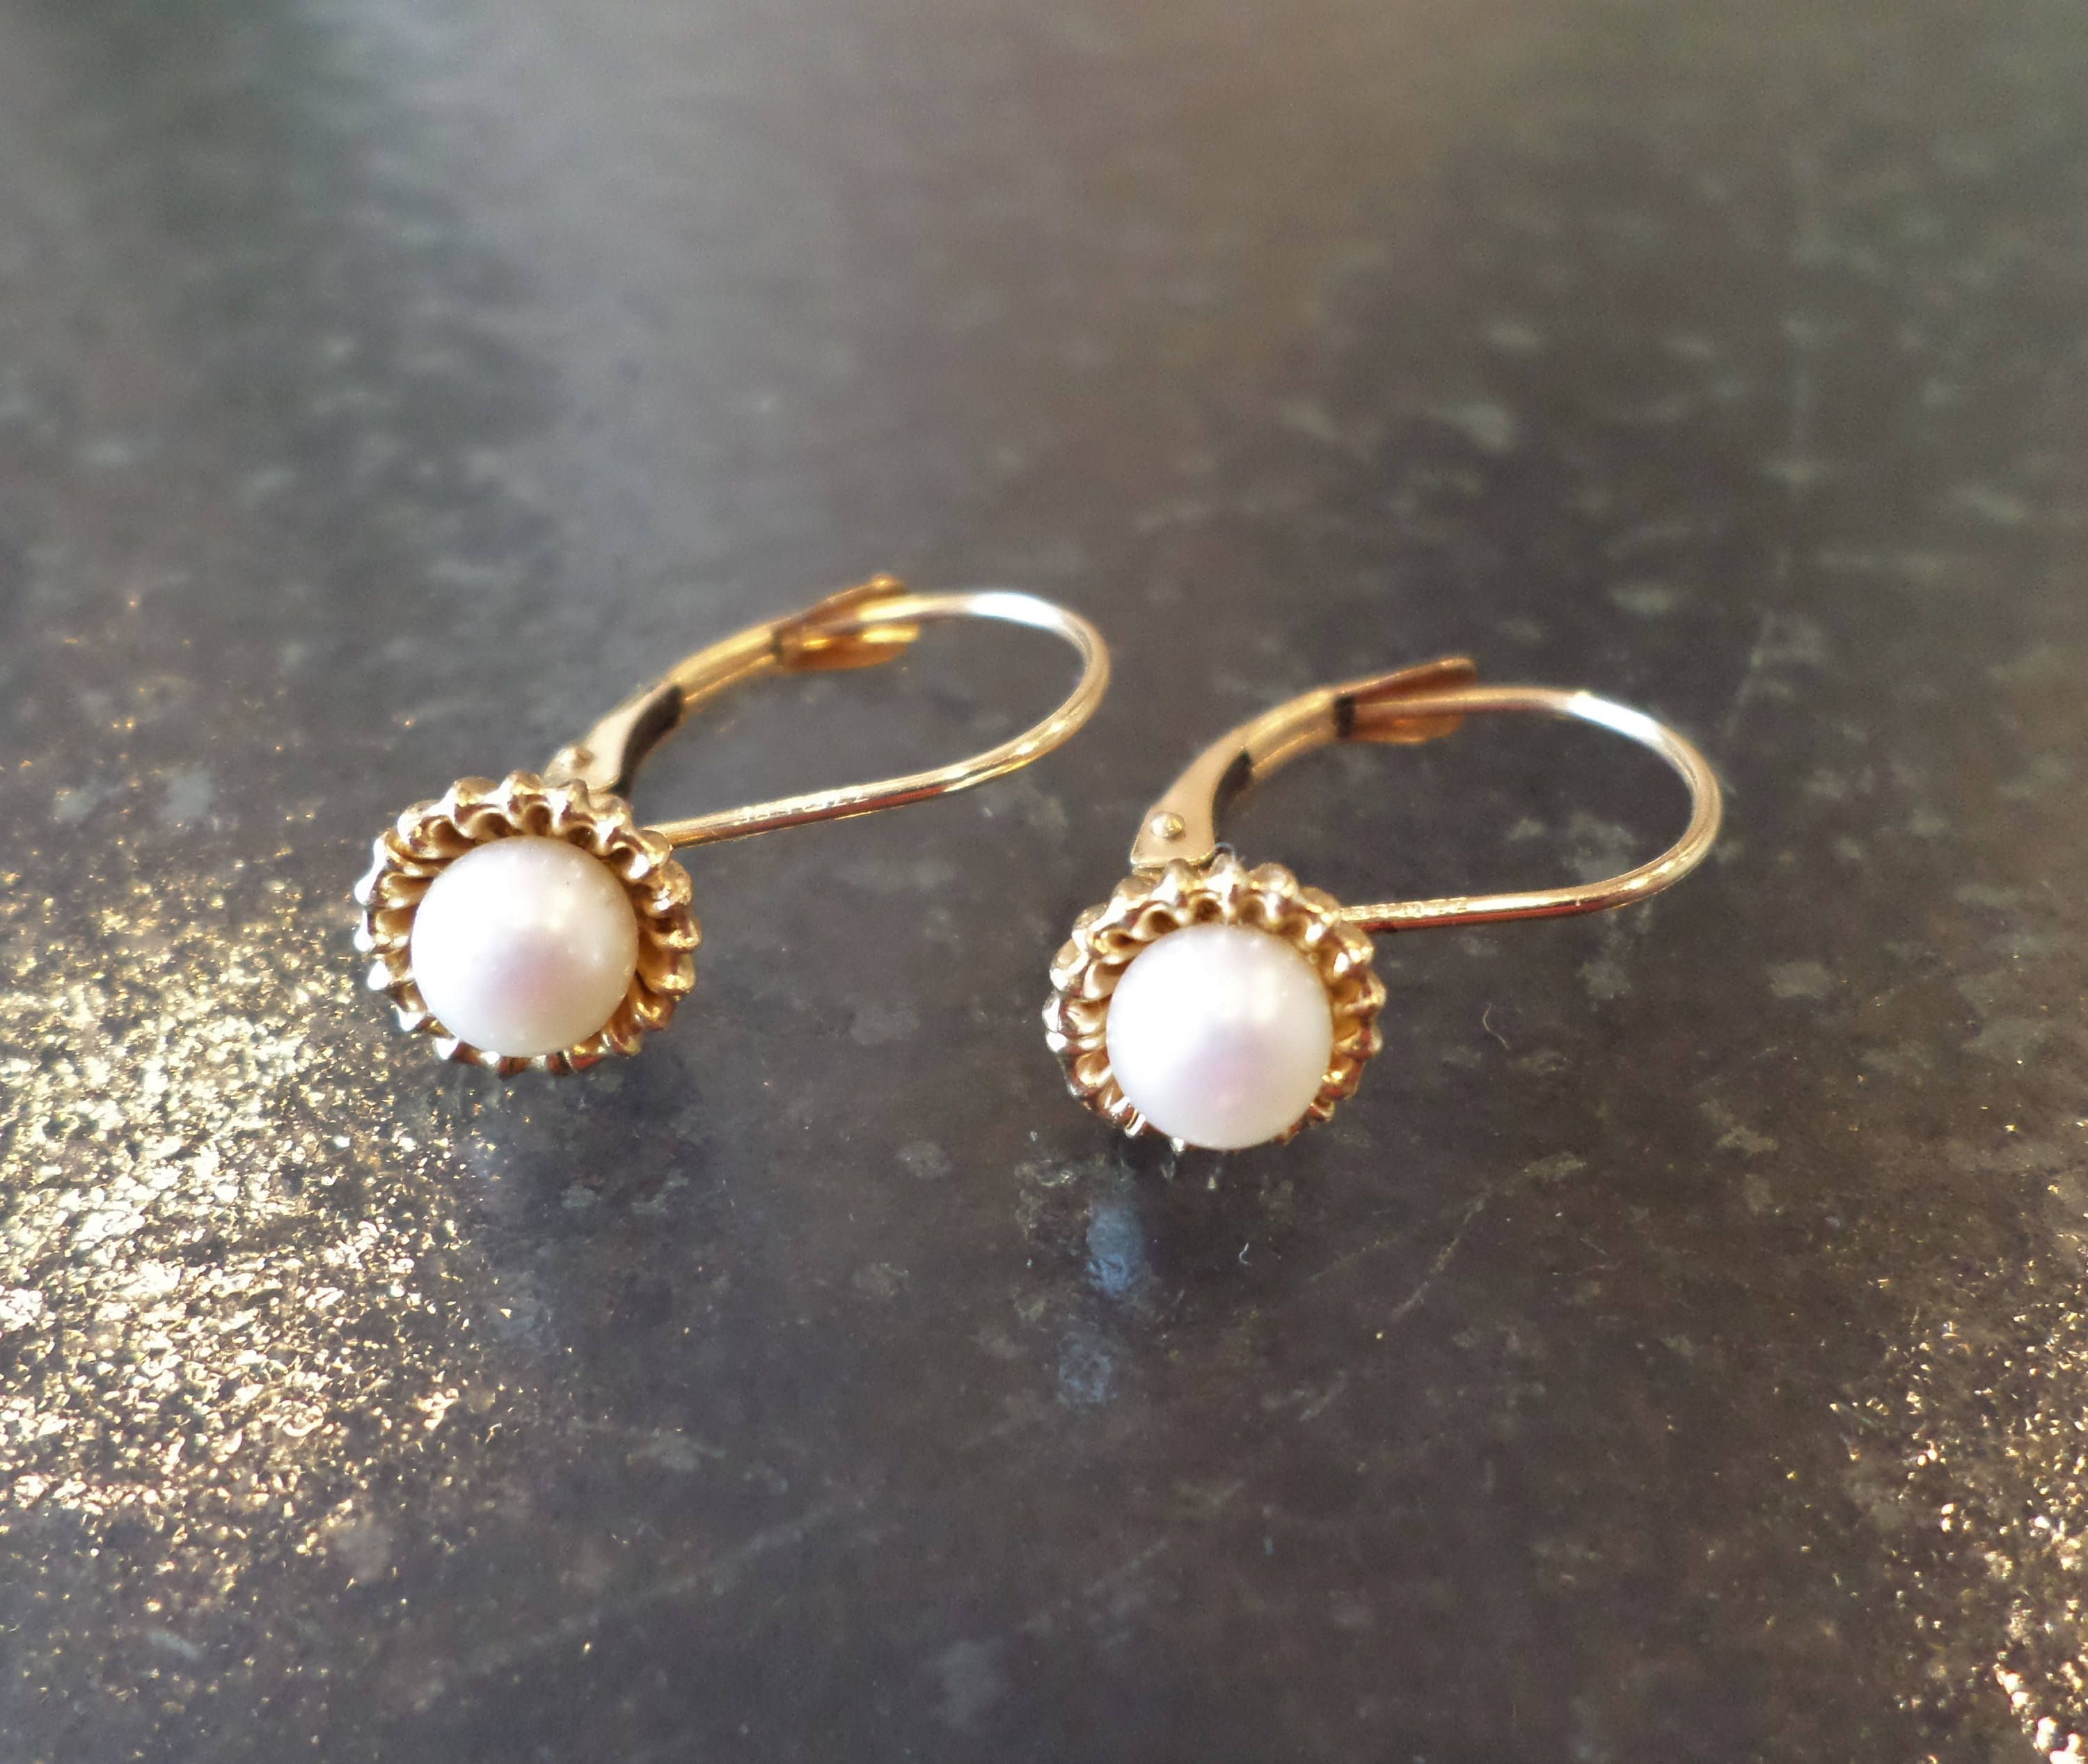 14k 585 Stamped Zz Signed Freshwater Pearls 1 Grams Earrings By